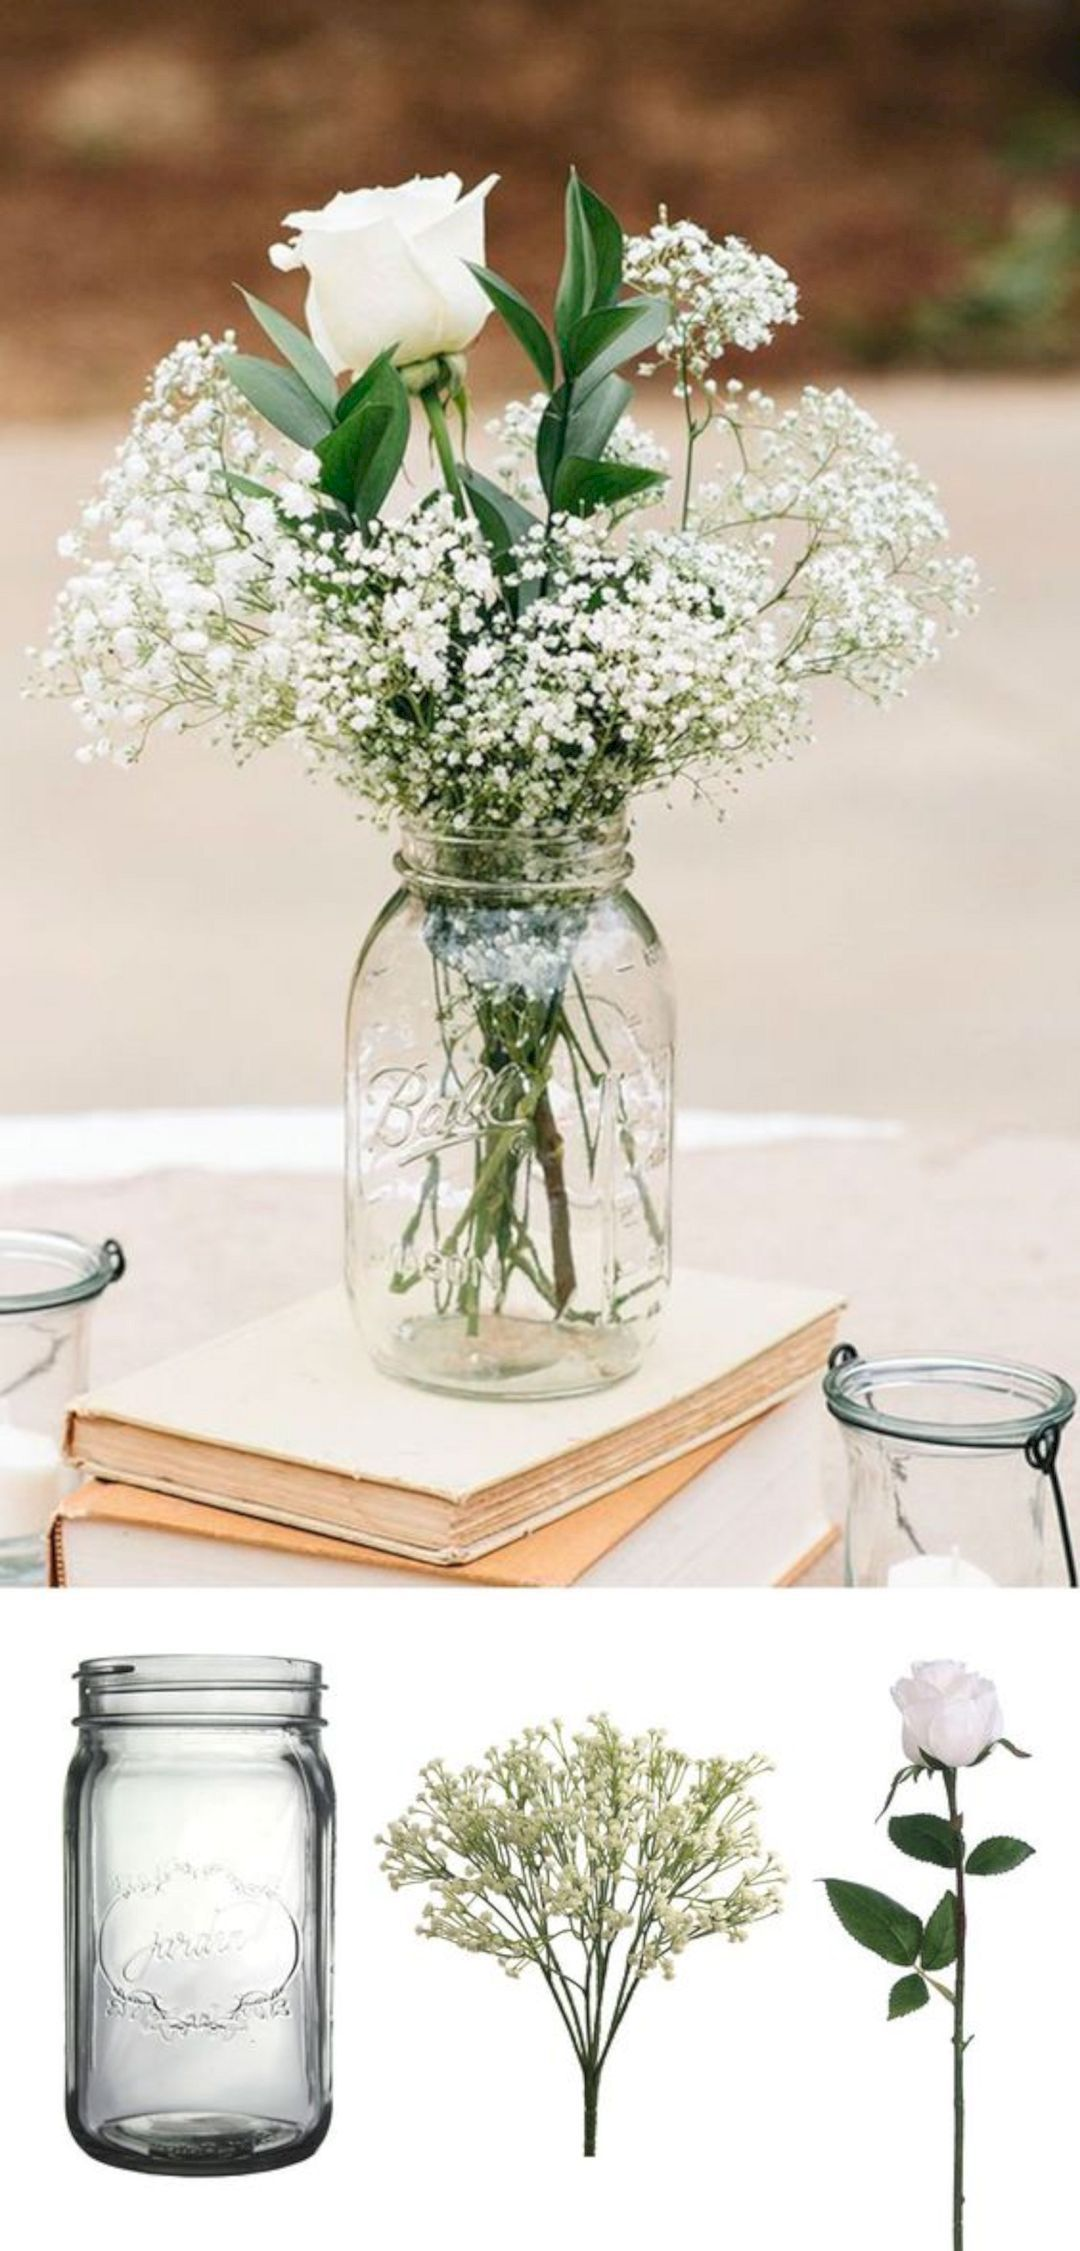 16 Simple Wedding Decor Ideas https://www.designlisticle.com/simple ...